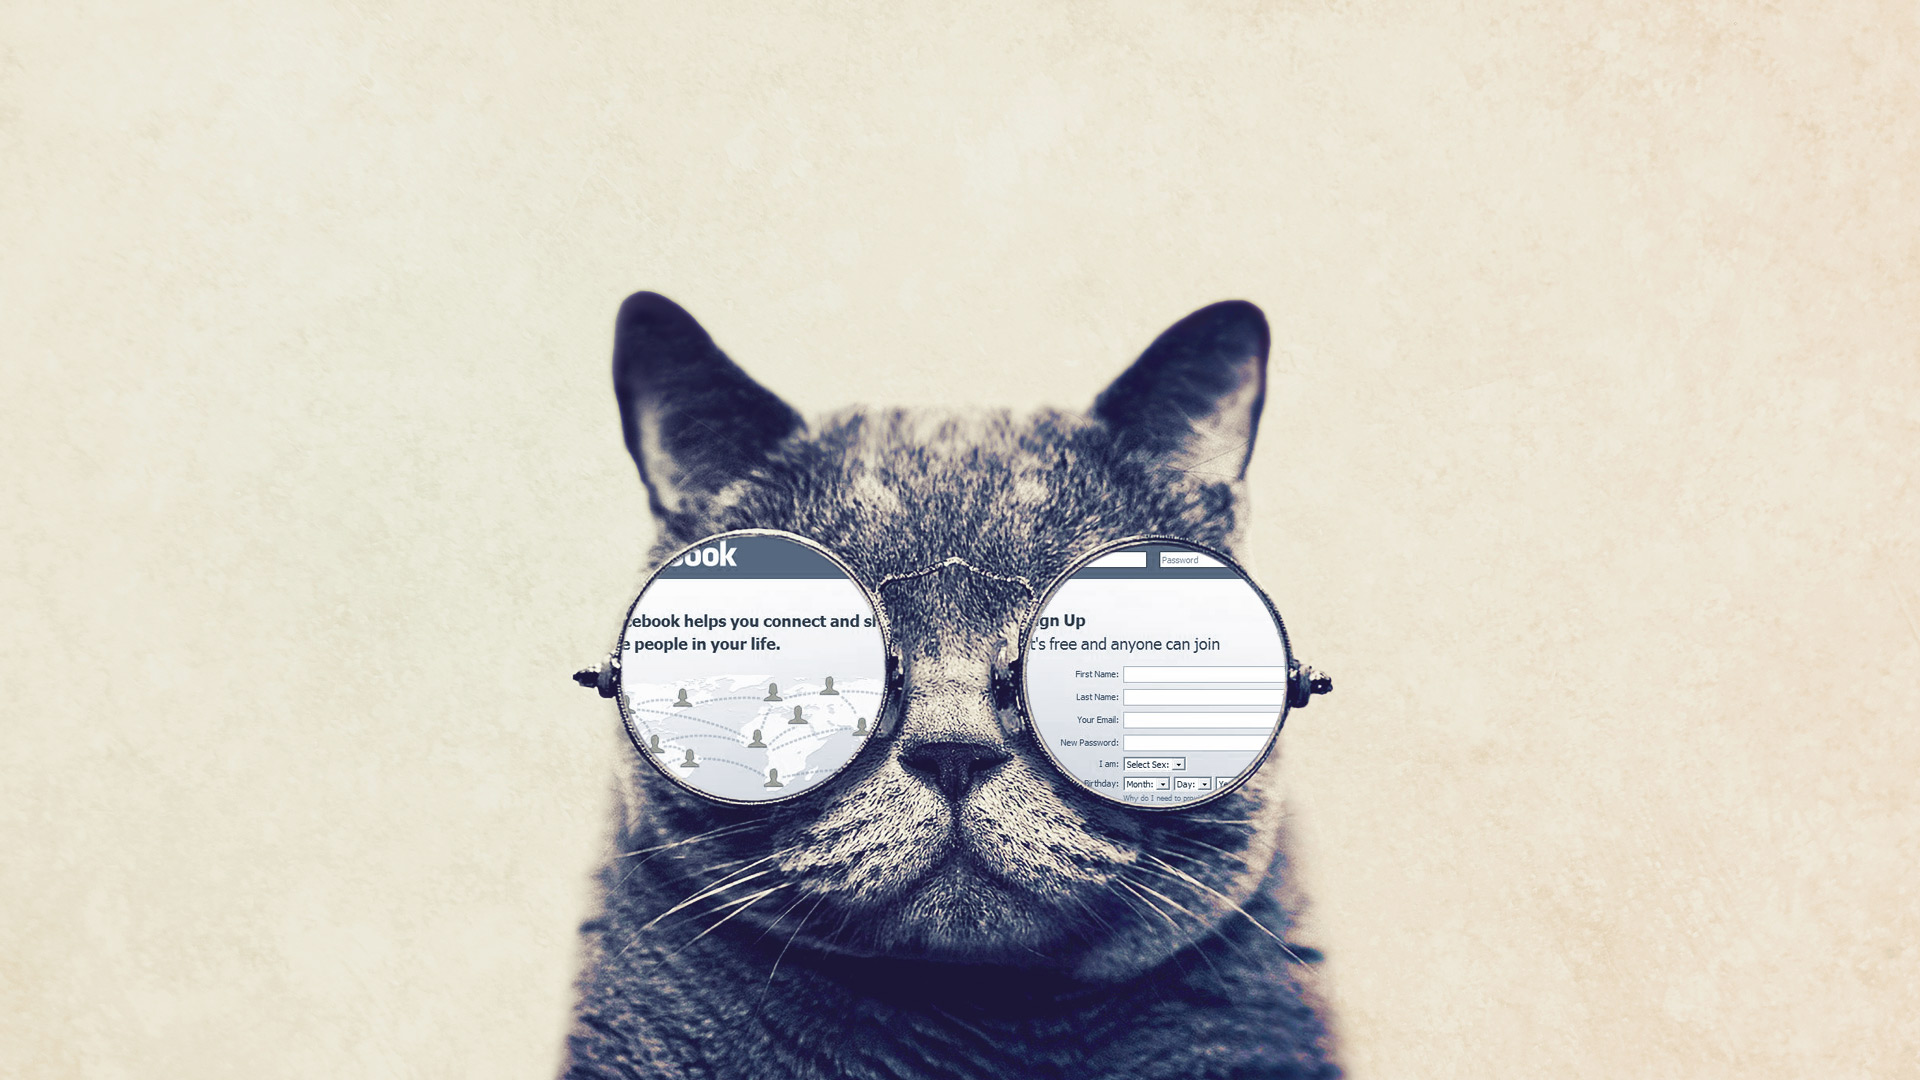 33828_funny_funny_cat_with_big_glasses.jpg